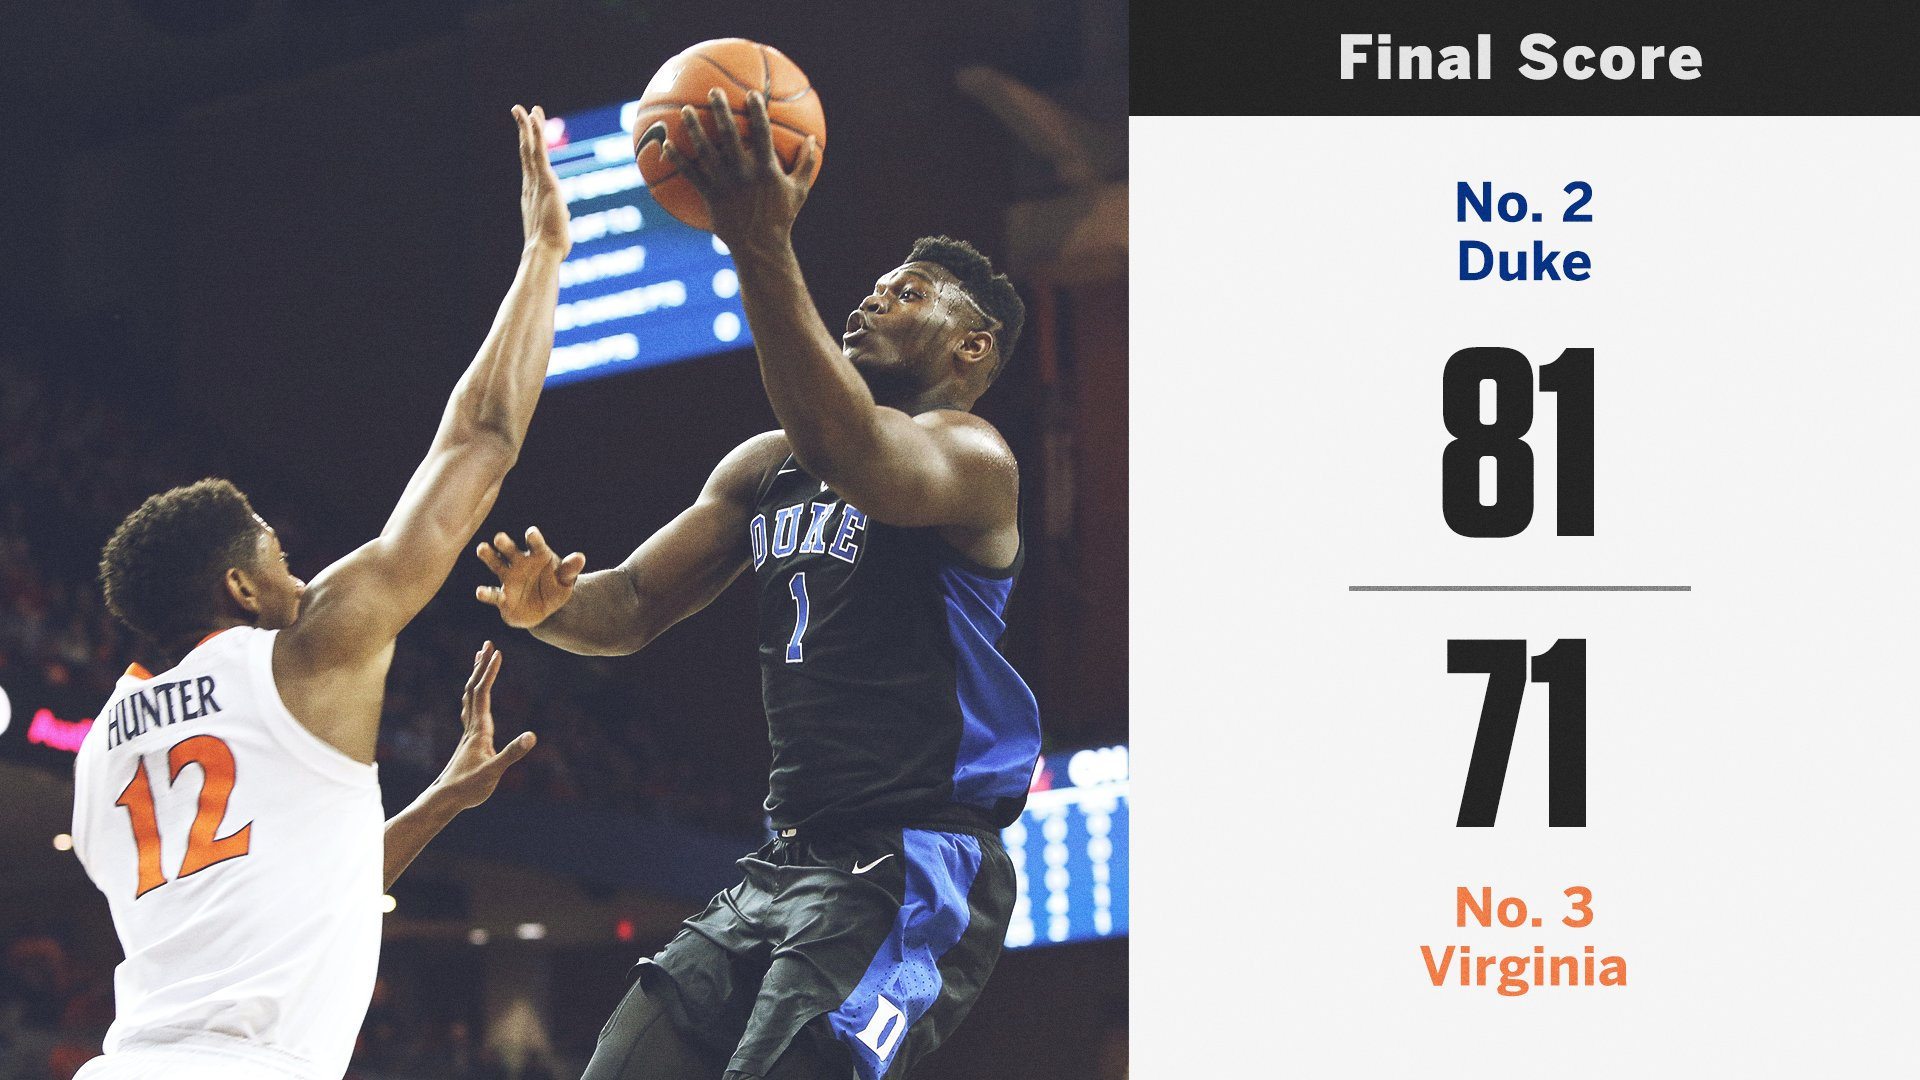 Duke went into Virginia and walked out with another W! https://t.co/sqvyuj1eAE